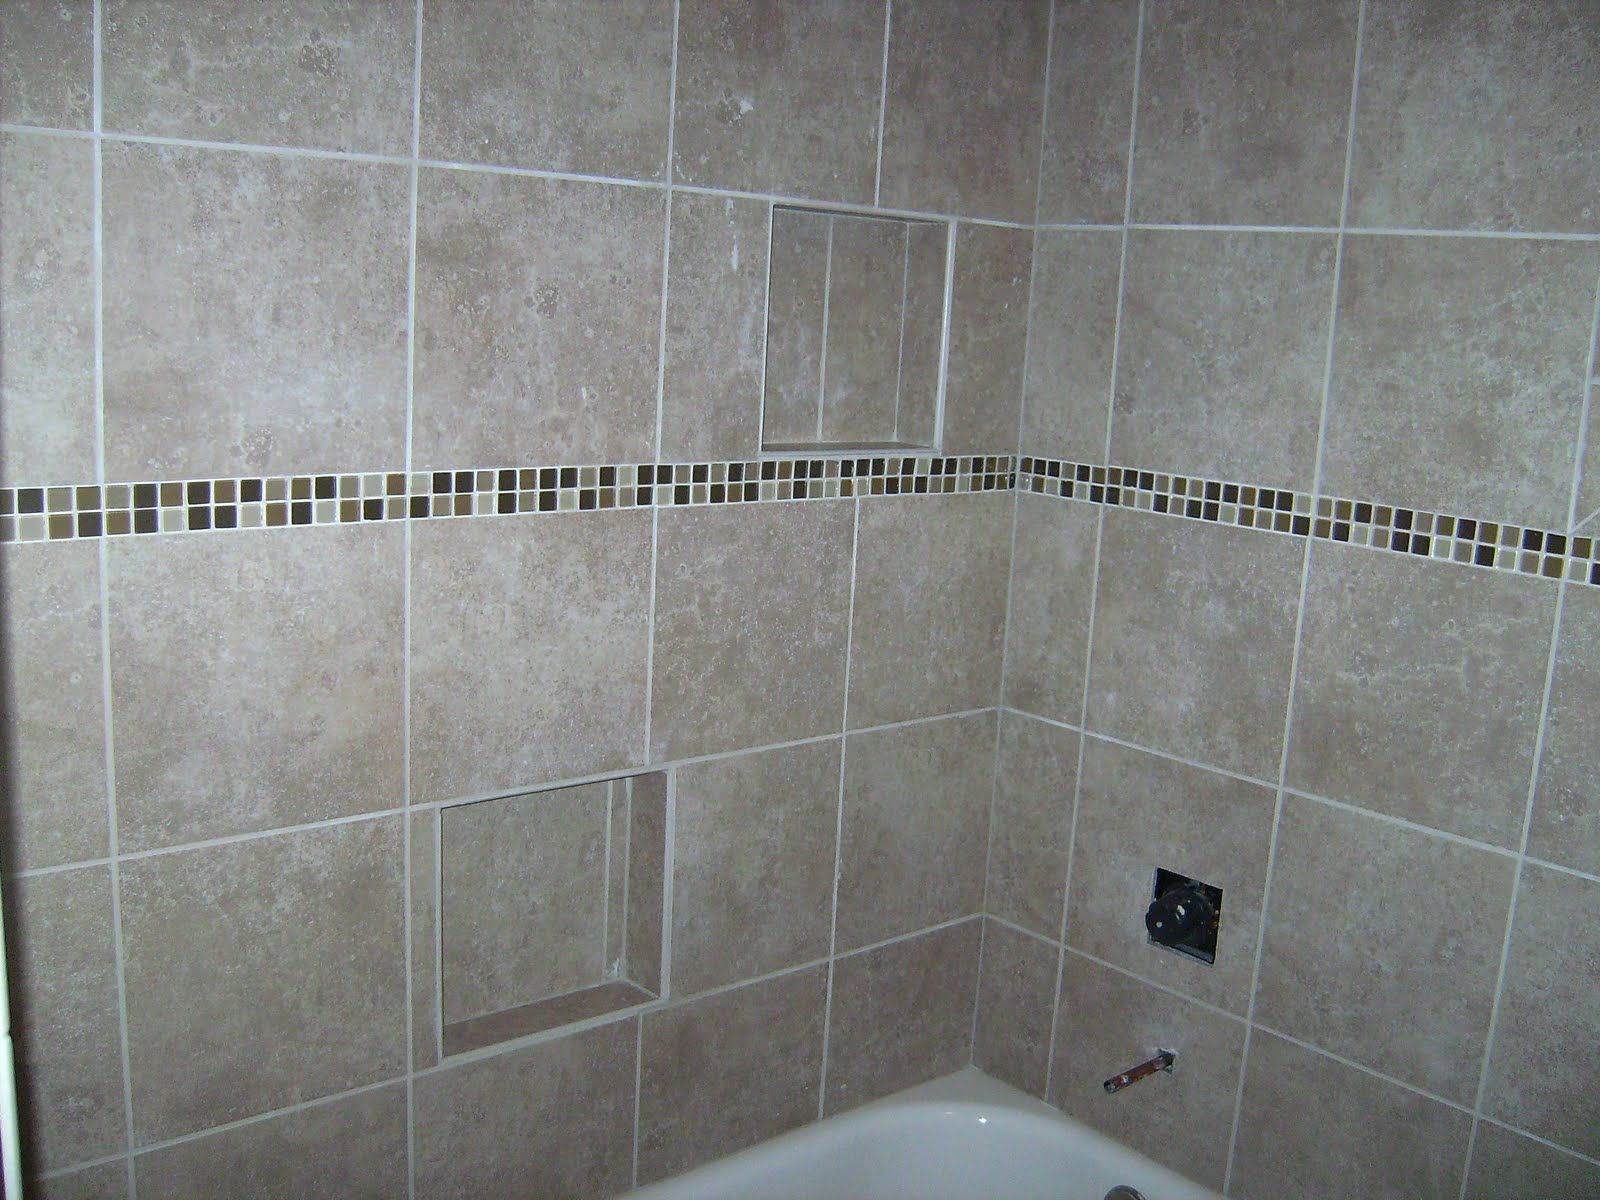 Bathroom floor vinyl tiles - Kn Tile And Flooring Inc Bathroom Walls Tub Surround